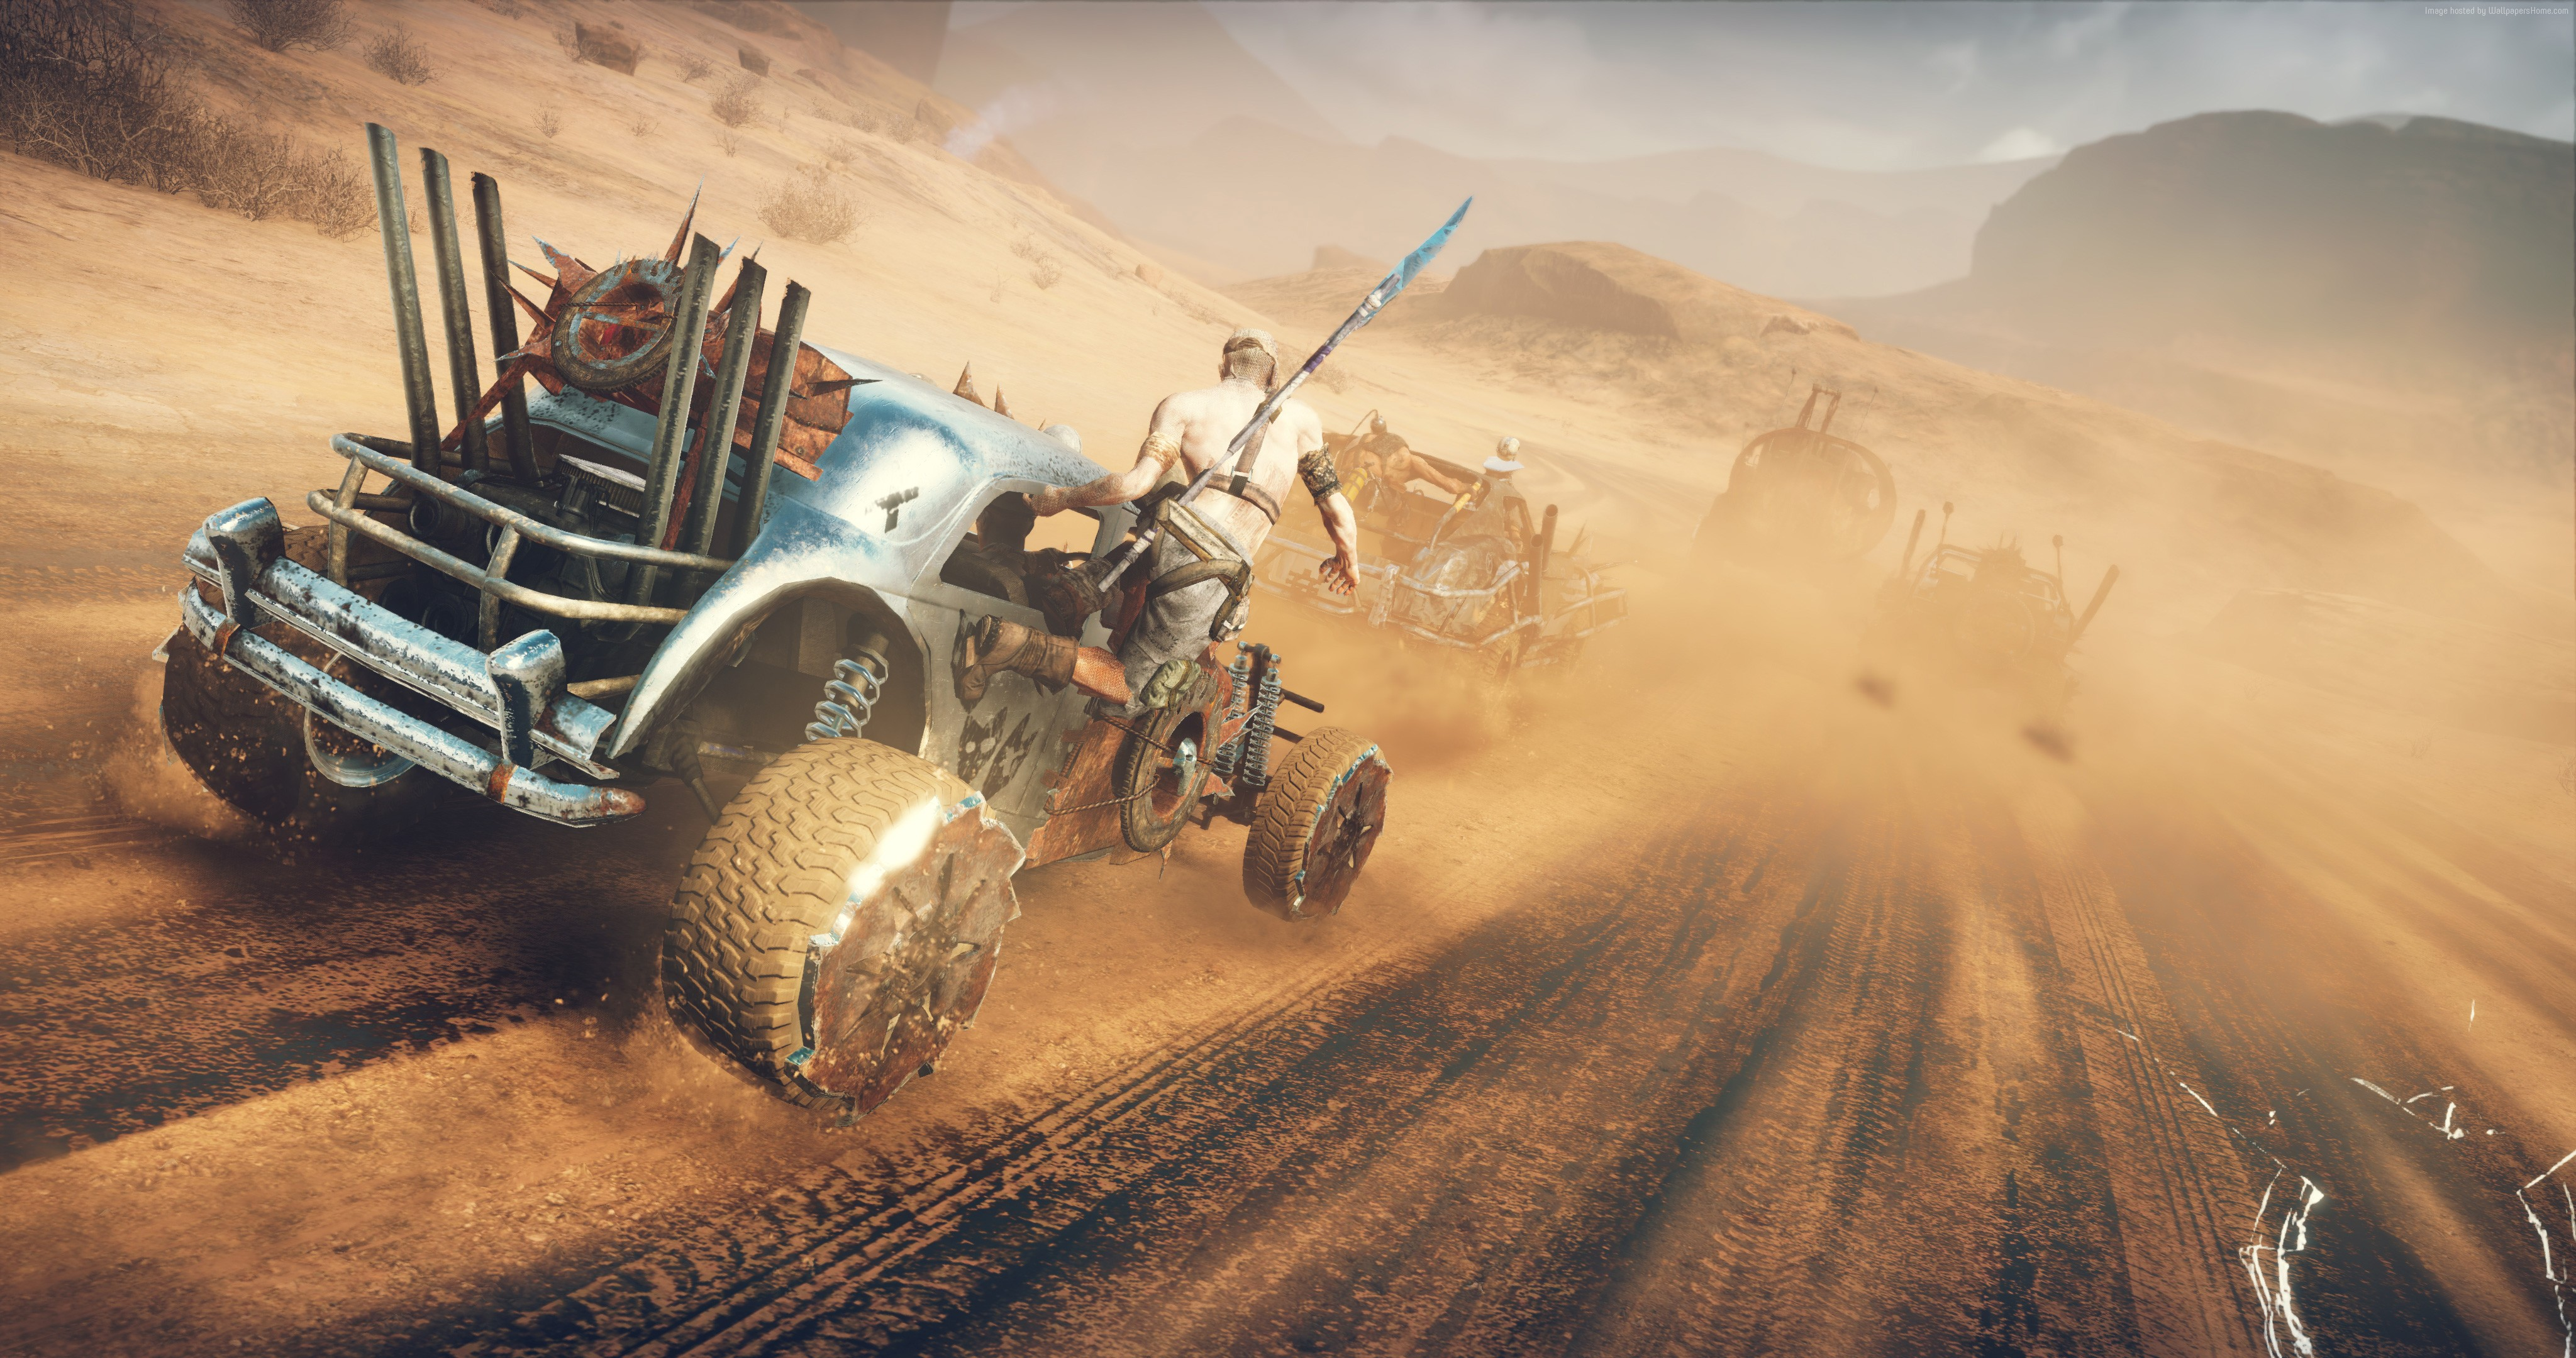 Mad Max Game Wallpaper HD Widescreen Backgrounds 4096x2160